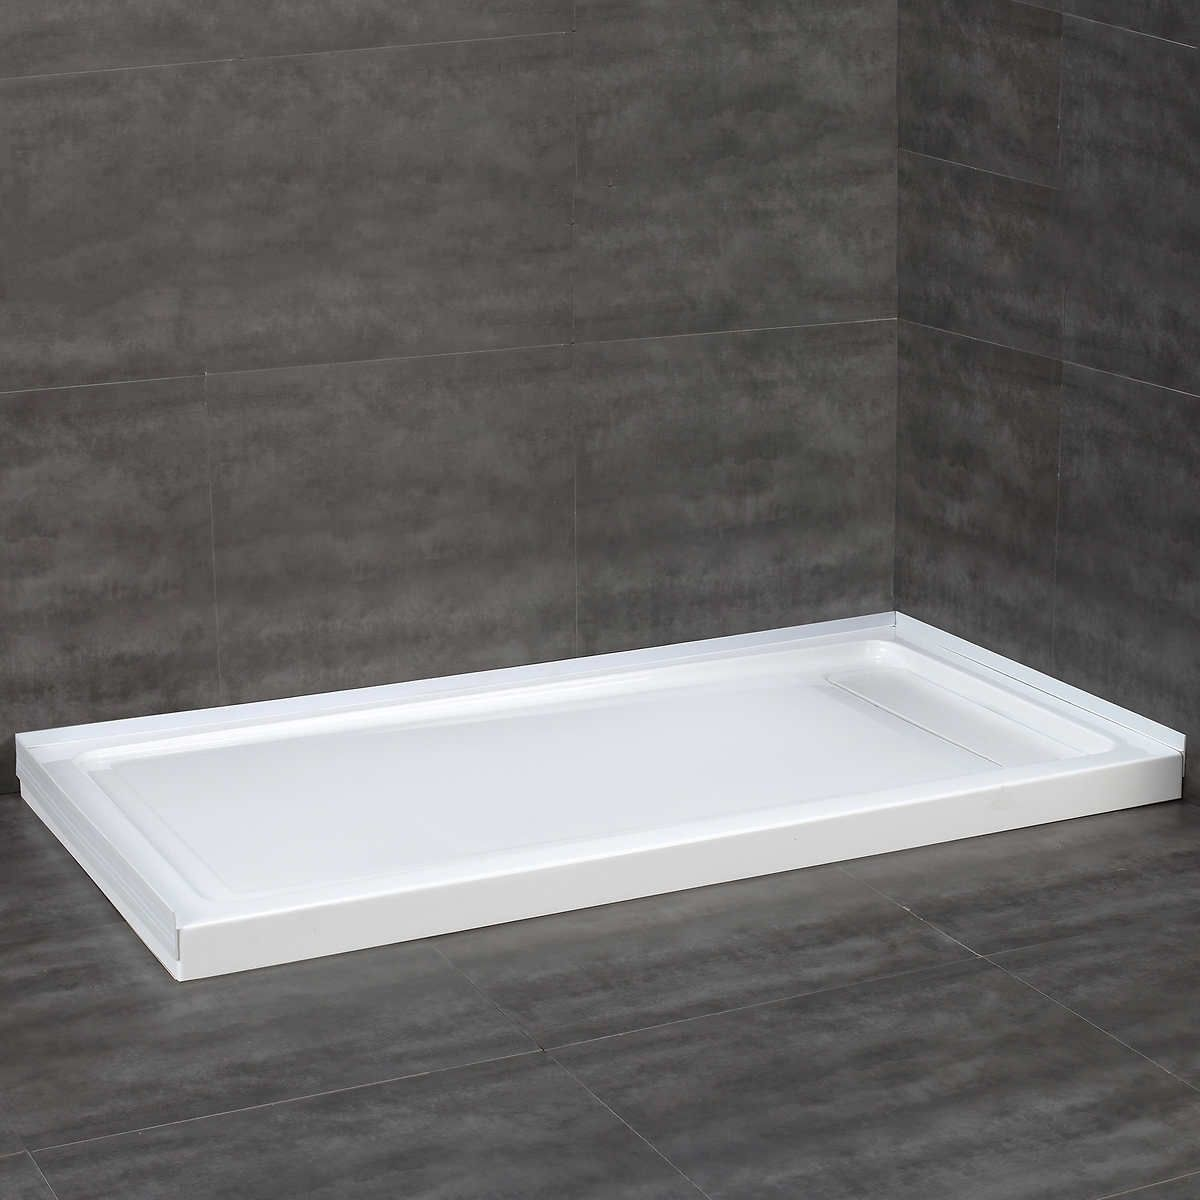 Costco Ove Decors Shower Base 32x60 And 36x72 279 Sizes Luxuryshoweraccessories Acrylic Shower Base Walk In Shower Small Bathroom